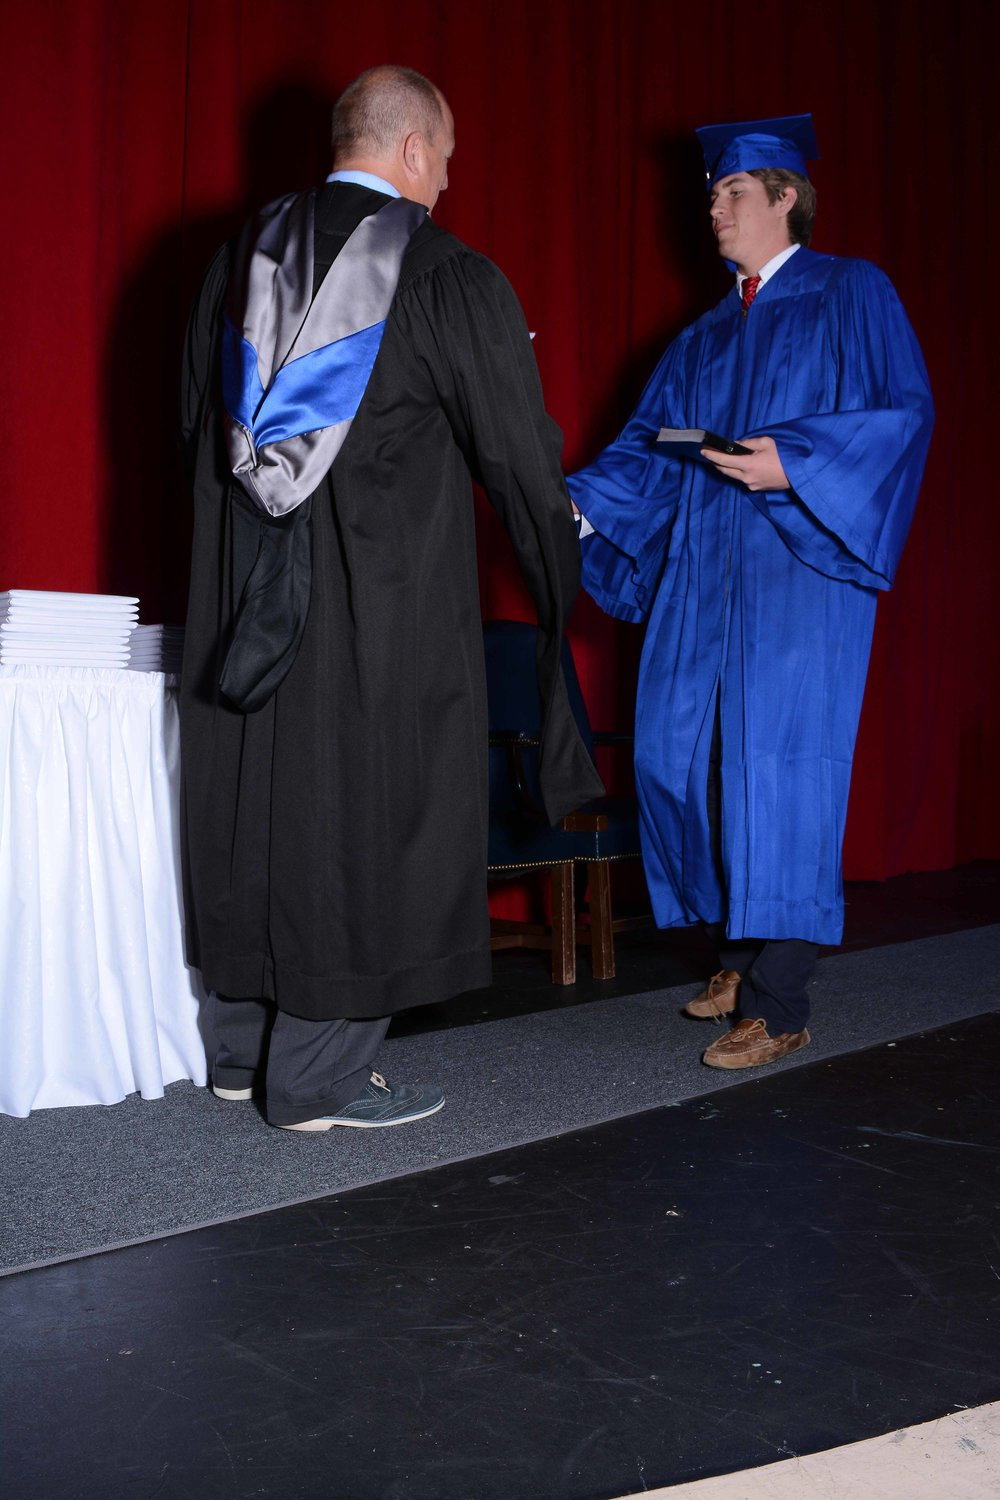 May14 Commencement116.jpg